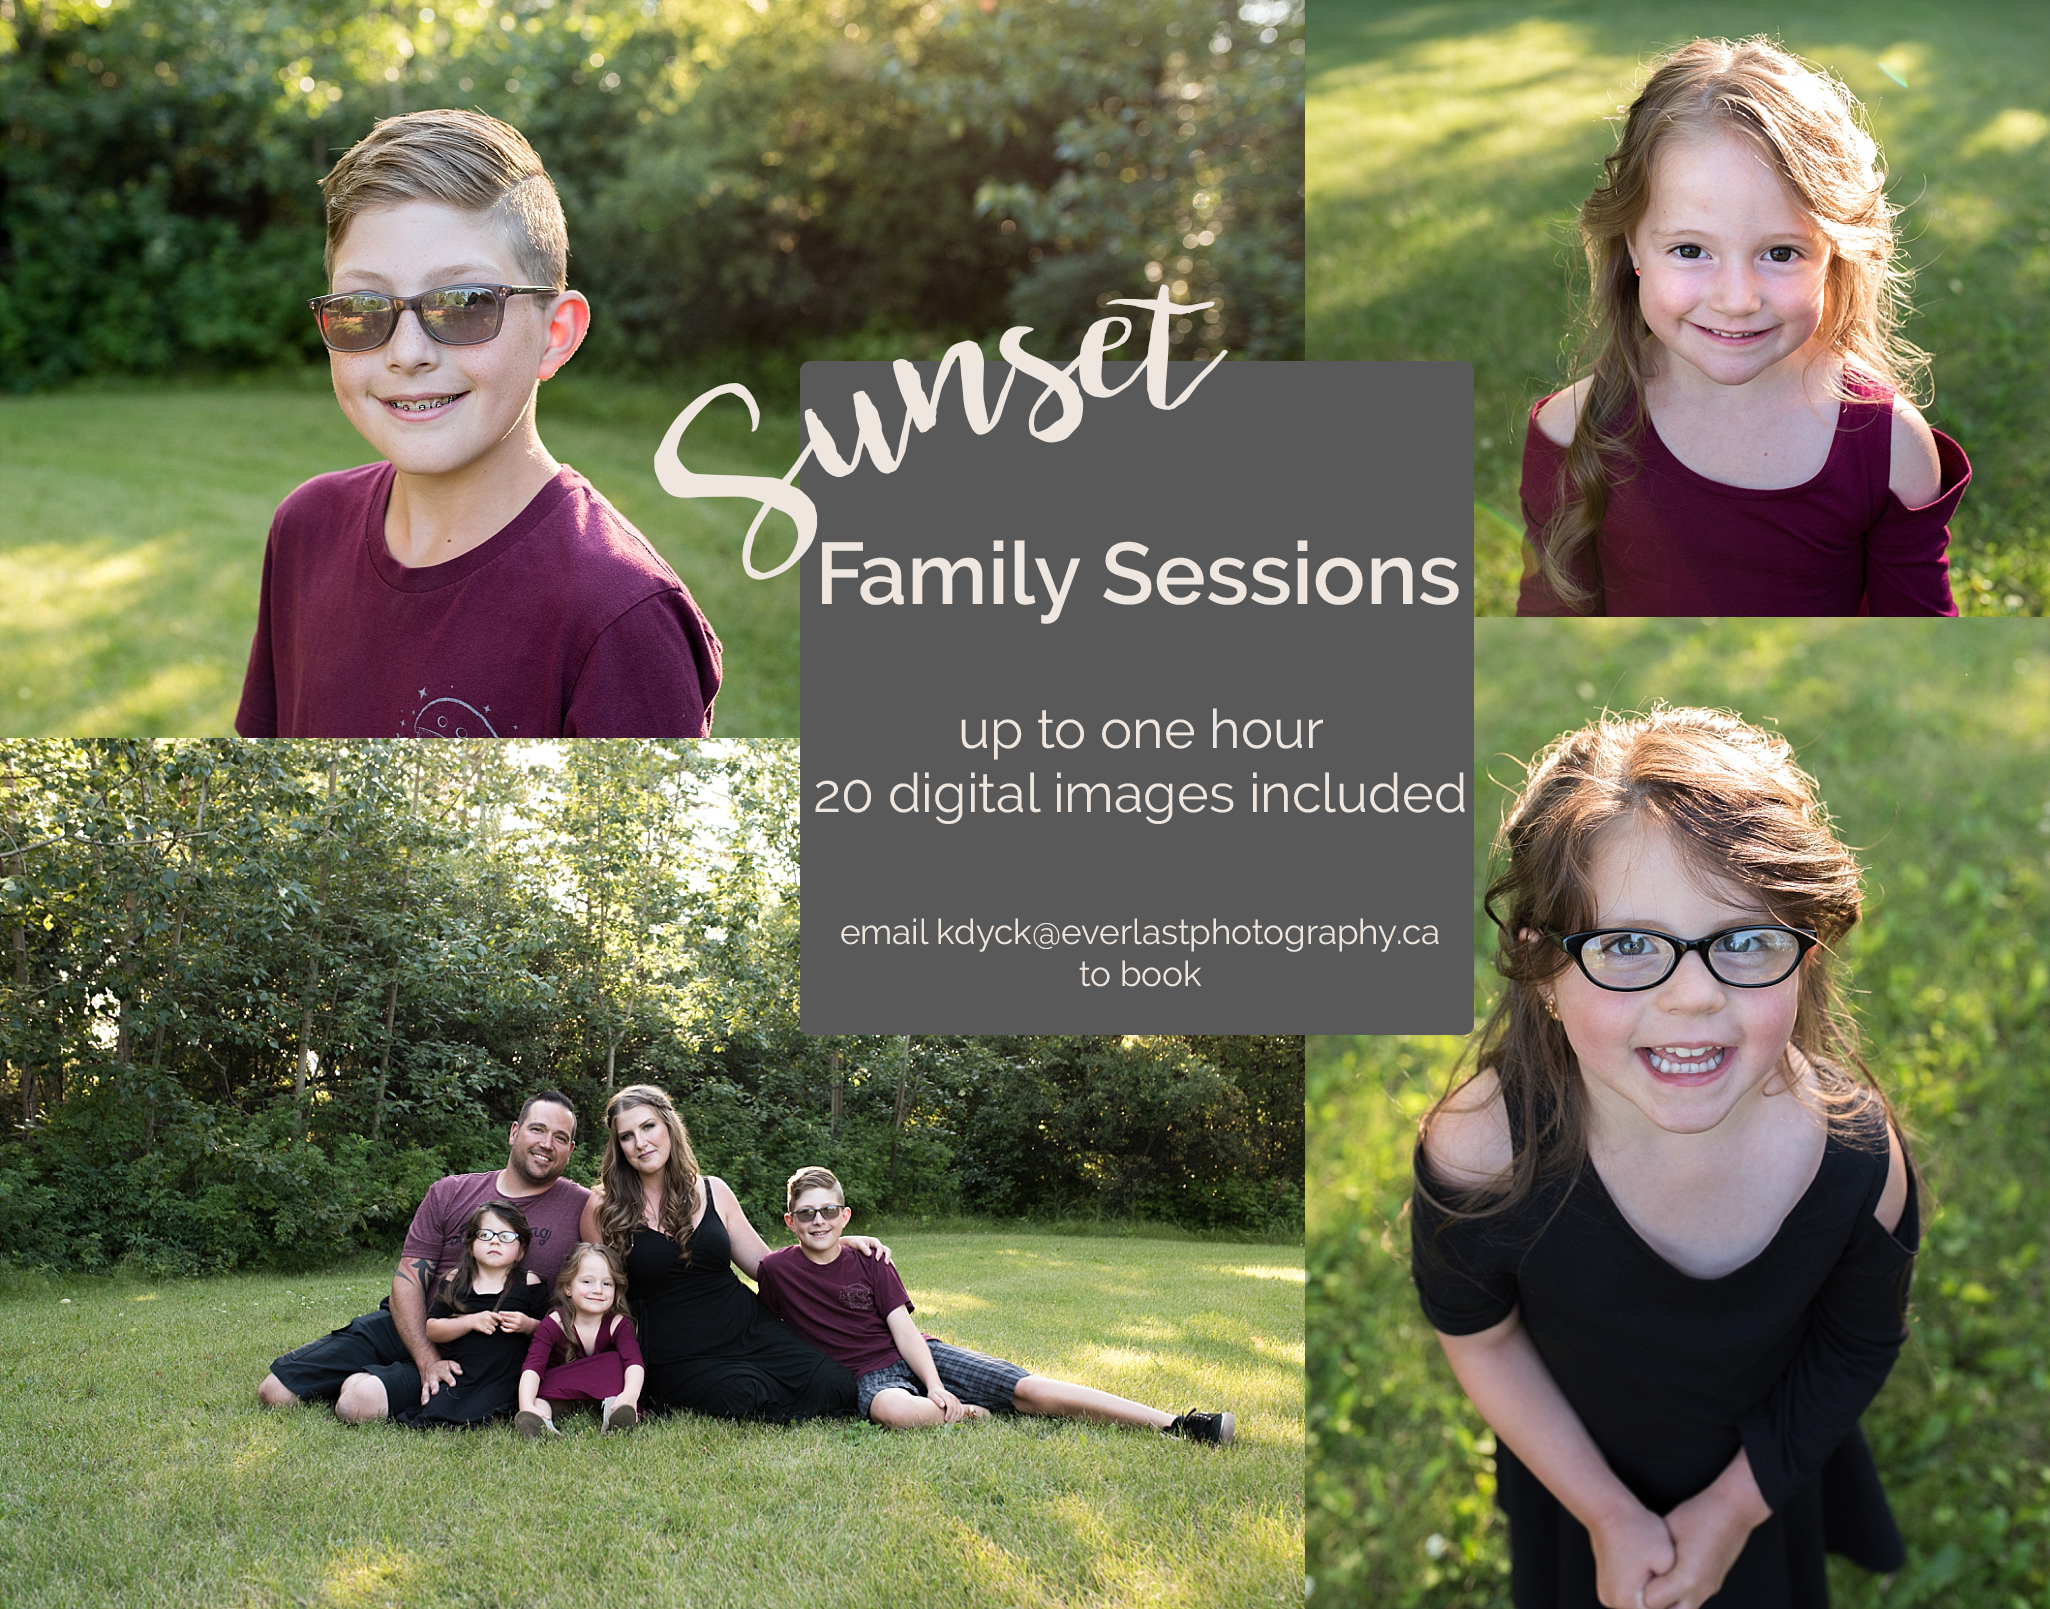 Sunset Family Sessions - AUGUST & SEPTEMBER 2017Everlast Photography is offering Sunset Family Sessions!! These sessions are focused on the connection of your loved ones and include intimate and fun images of the whole family! Your Sunset session includes up to one hour on location AND you'll get to choose 20 of your favourite digital images (with print release)!!For these sessions ONLY, your investment is only $299!